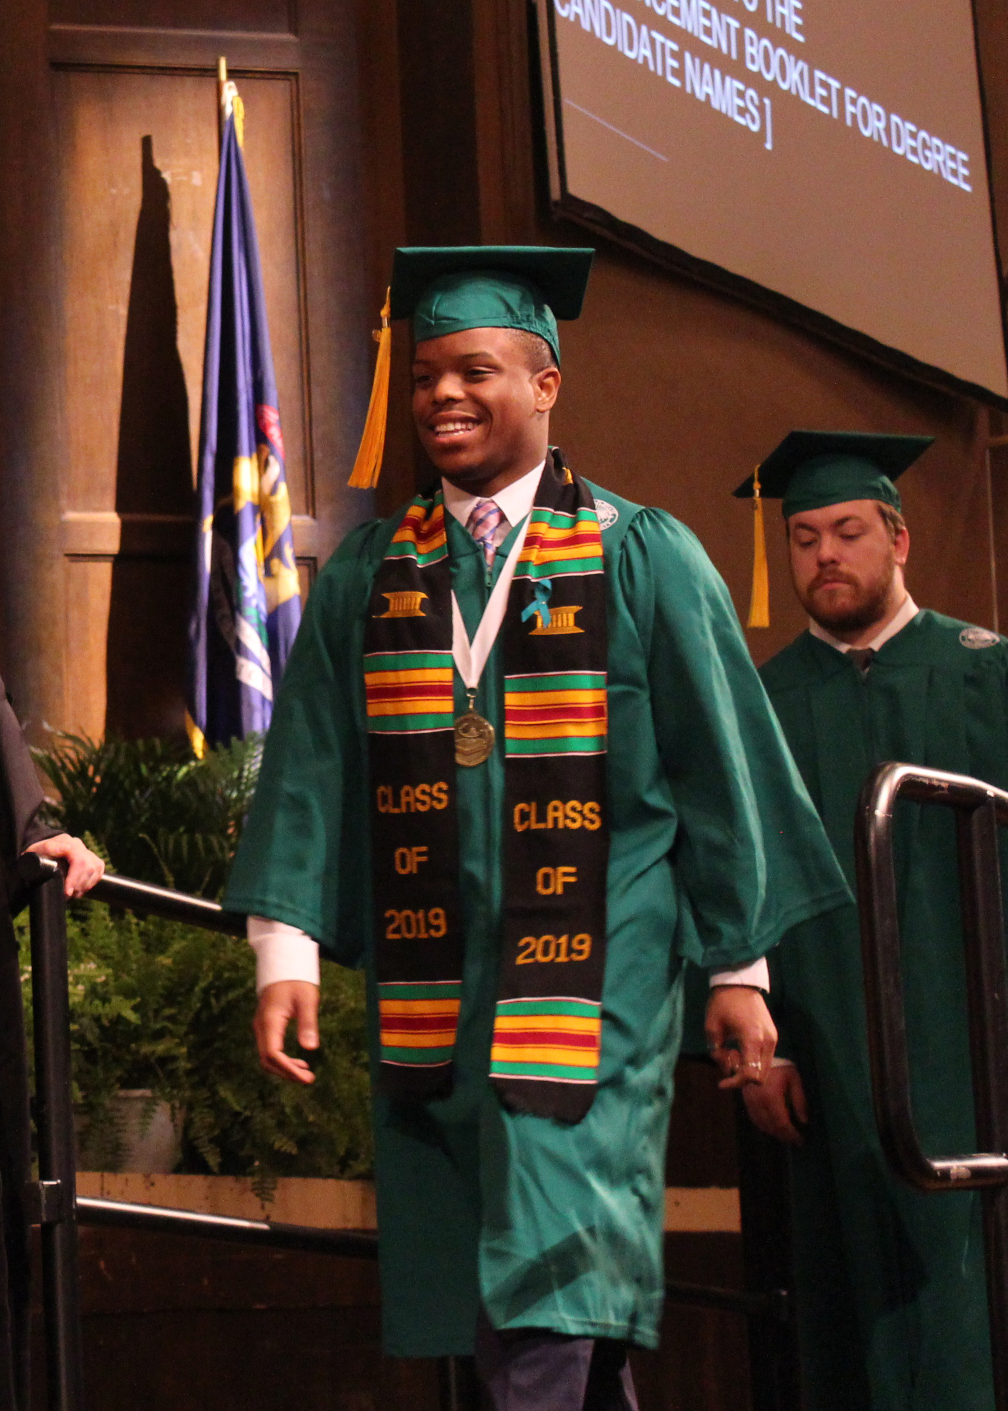 Malcolm Davis at Spring 2019 Commencement, prior to receiving his diploma